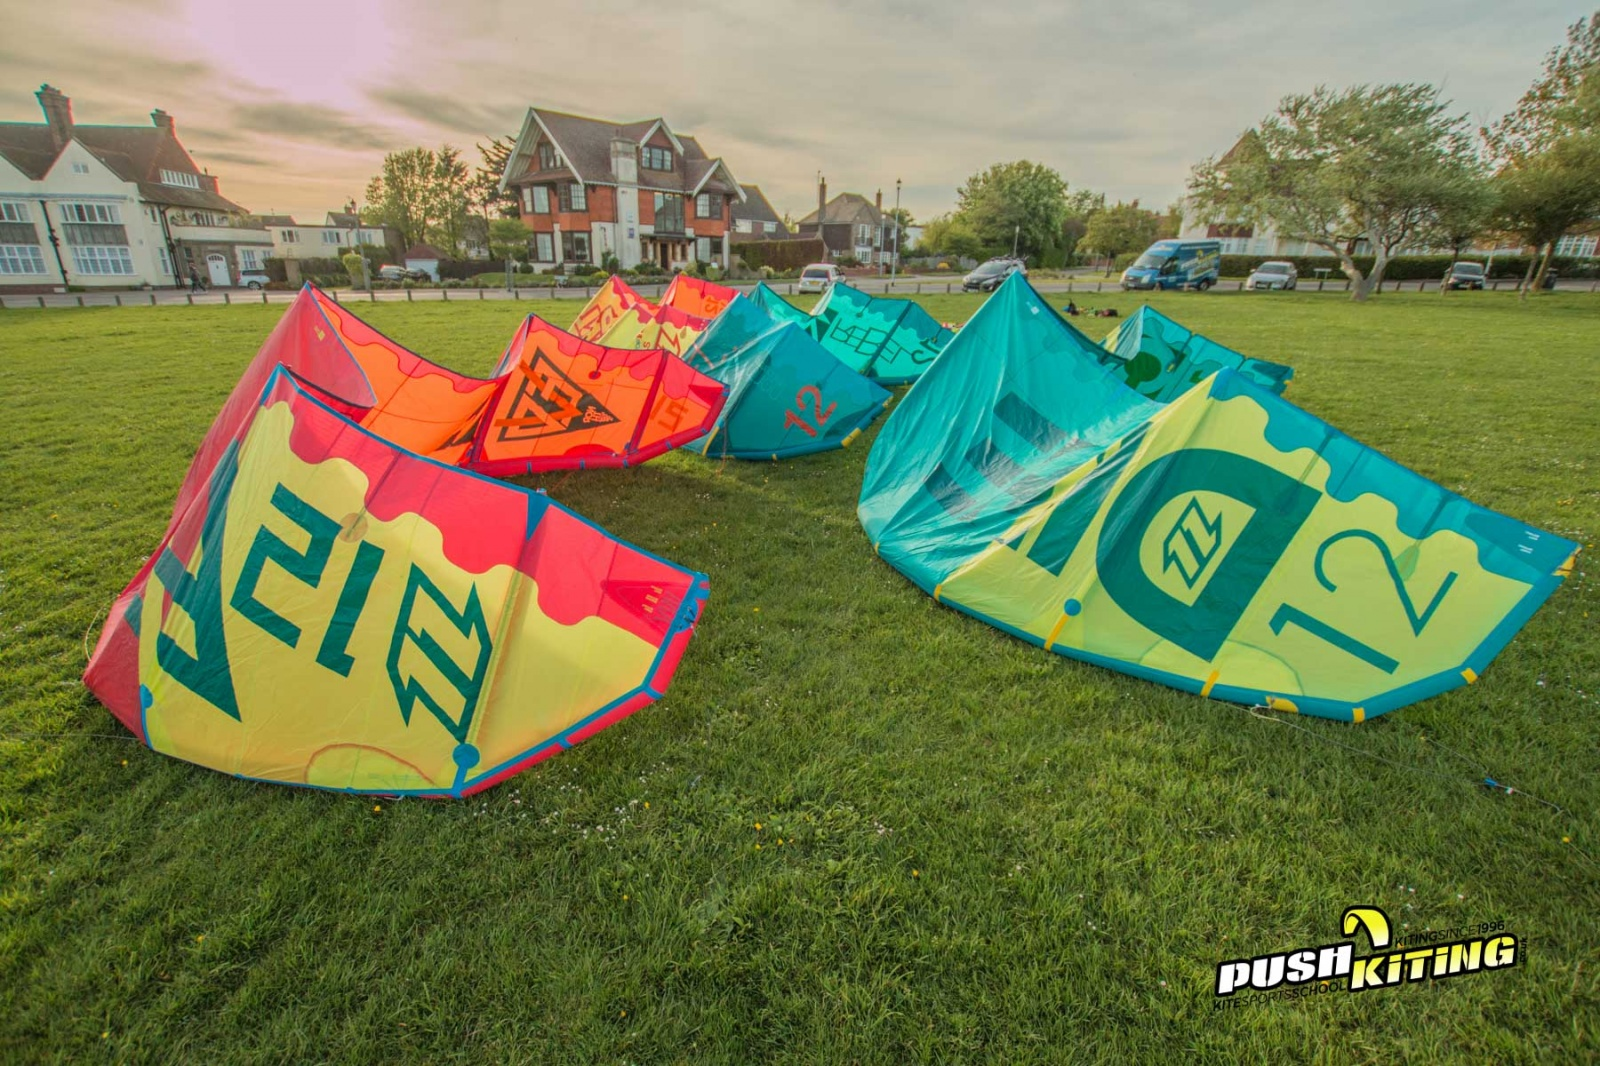 North kites for sale